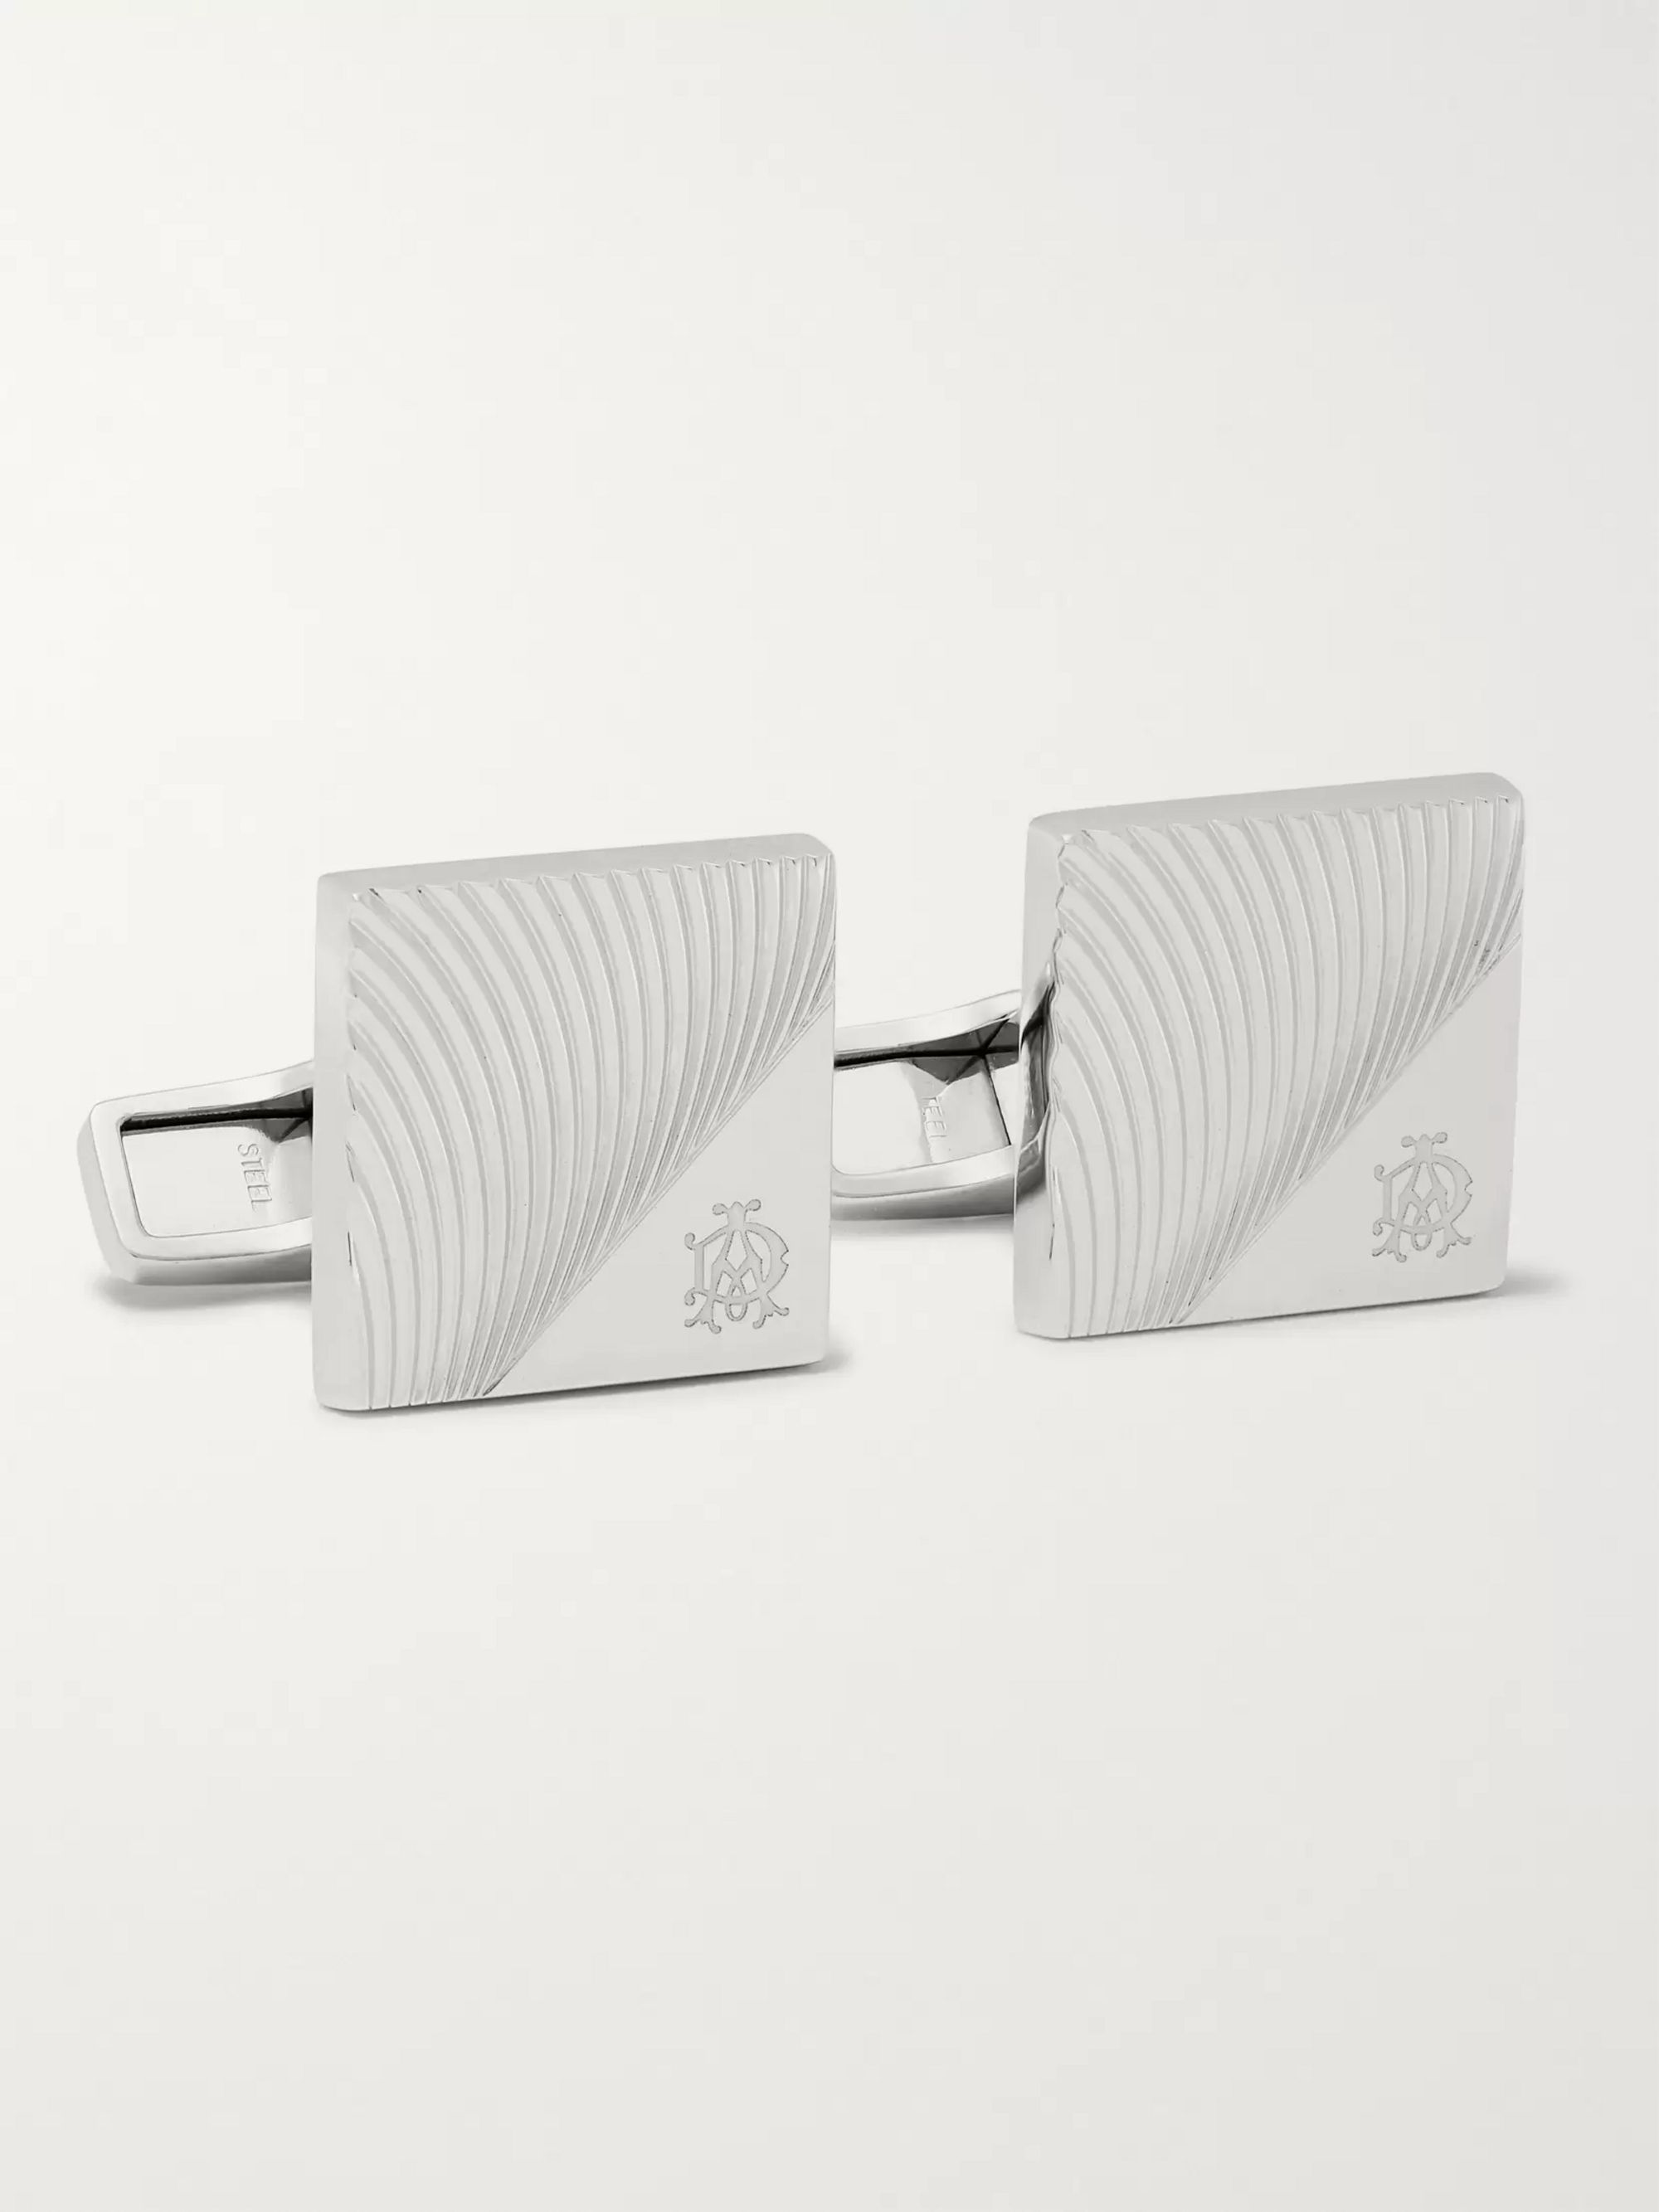 Dunhill Engraved Rhodium-Plated Cufflinks